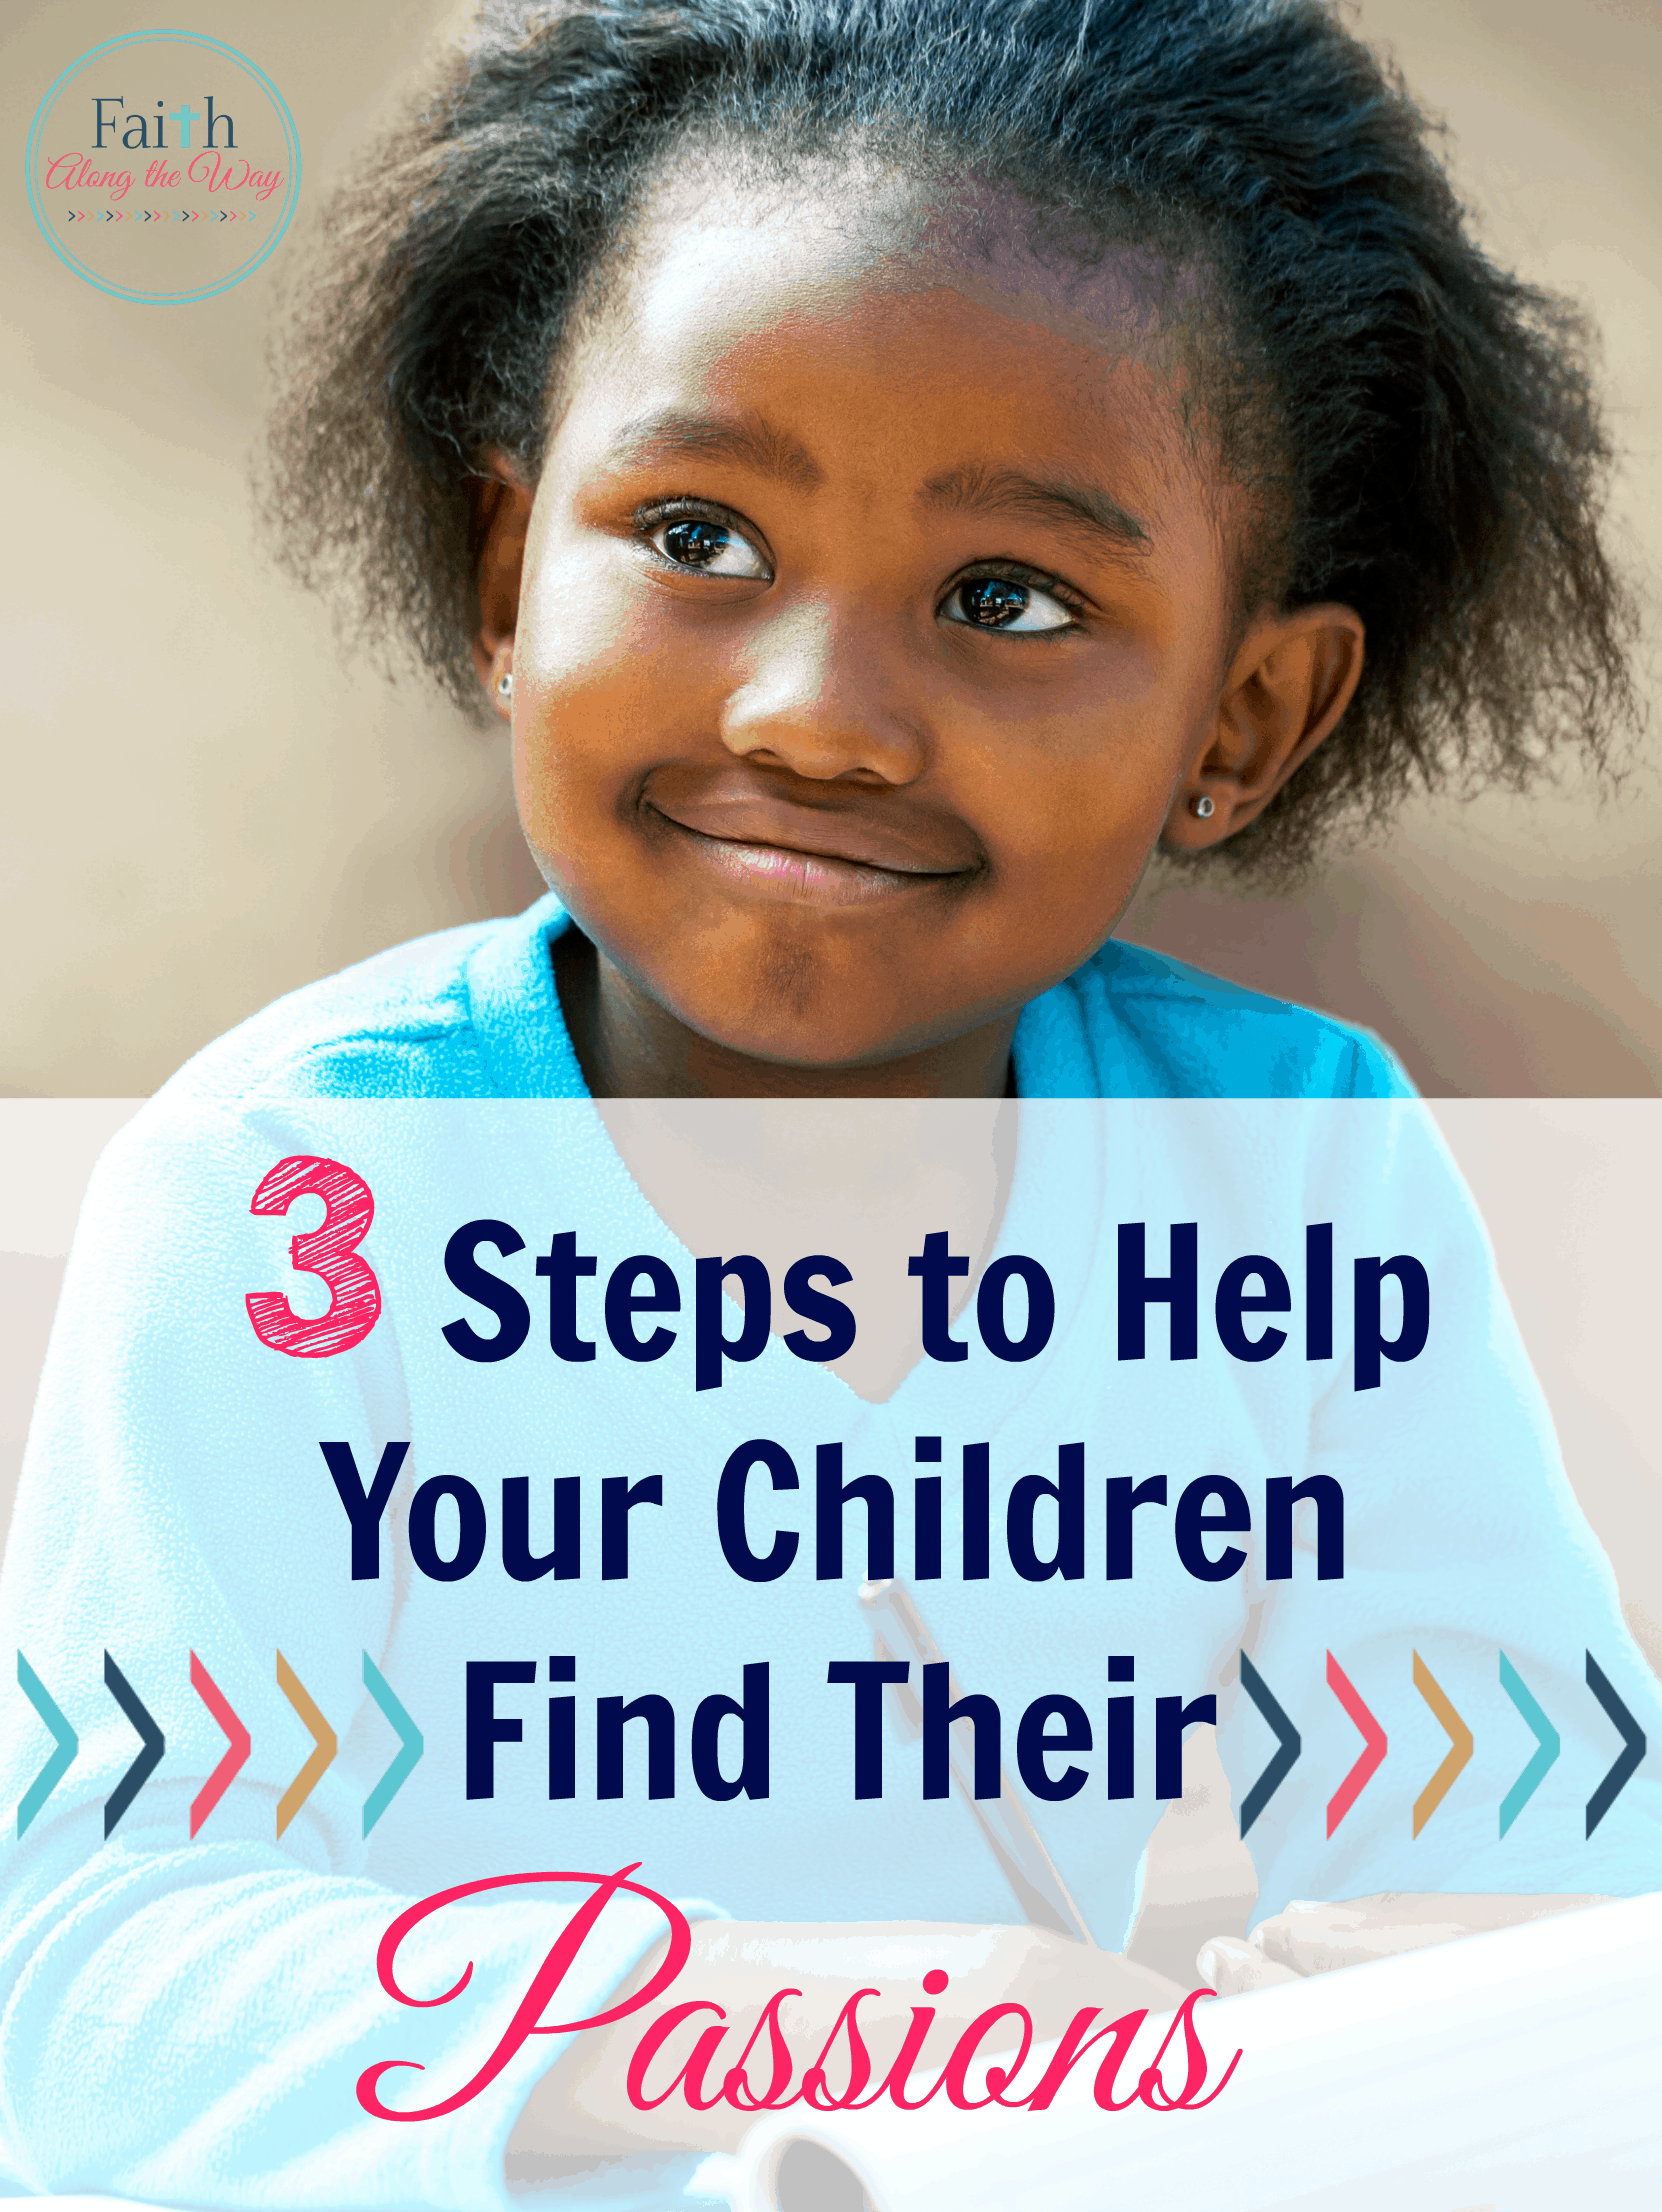 3 Steps to Help Your Children Find Their Passions Faith Along the Way